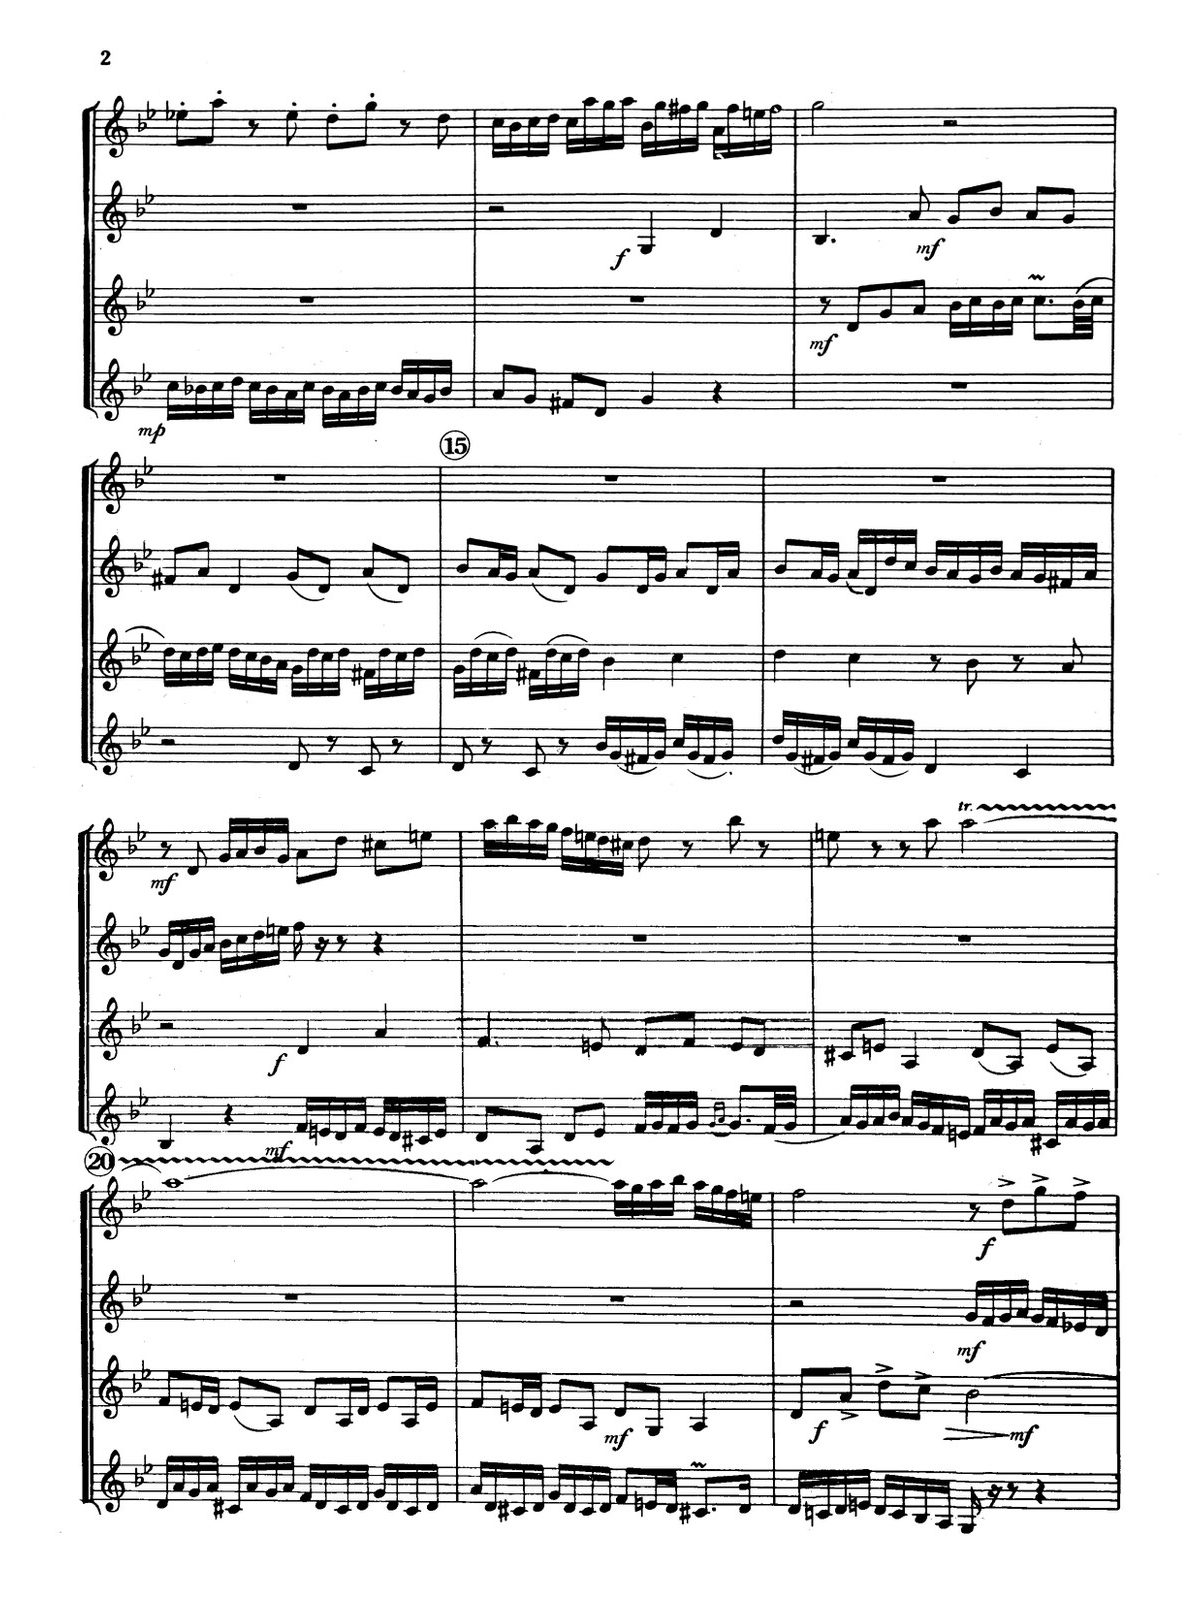 Davidson, Little Fugue in G Minor-p04